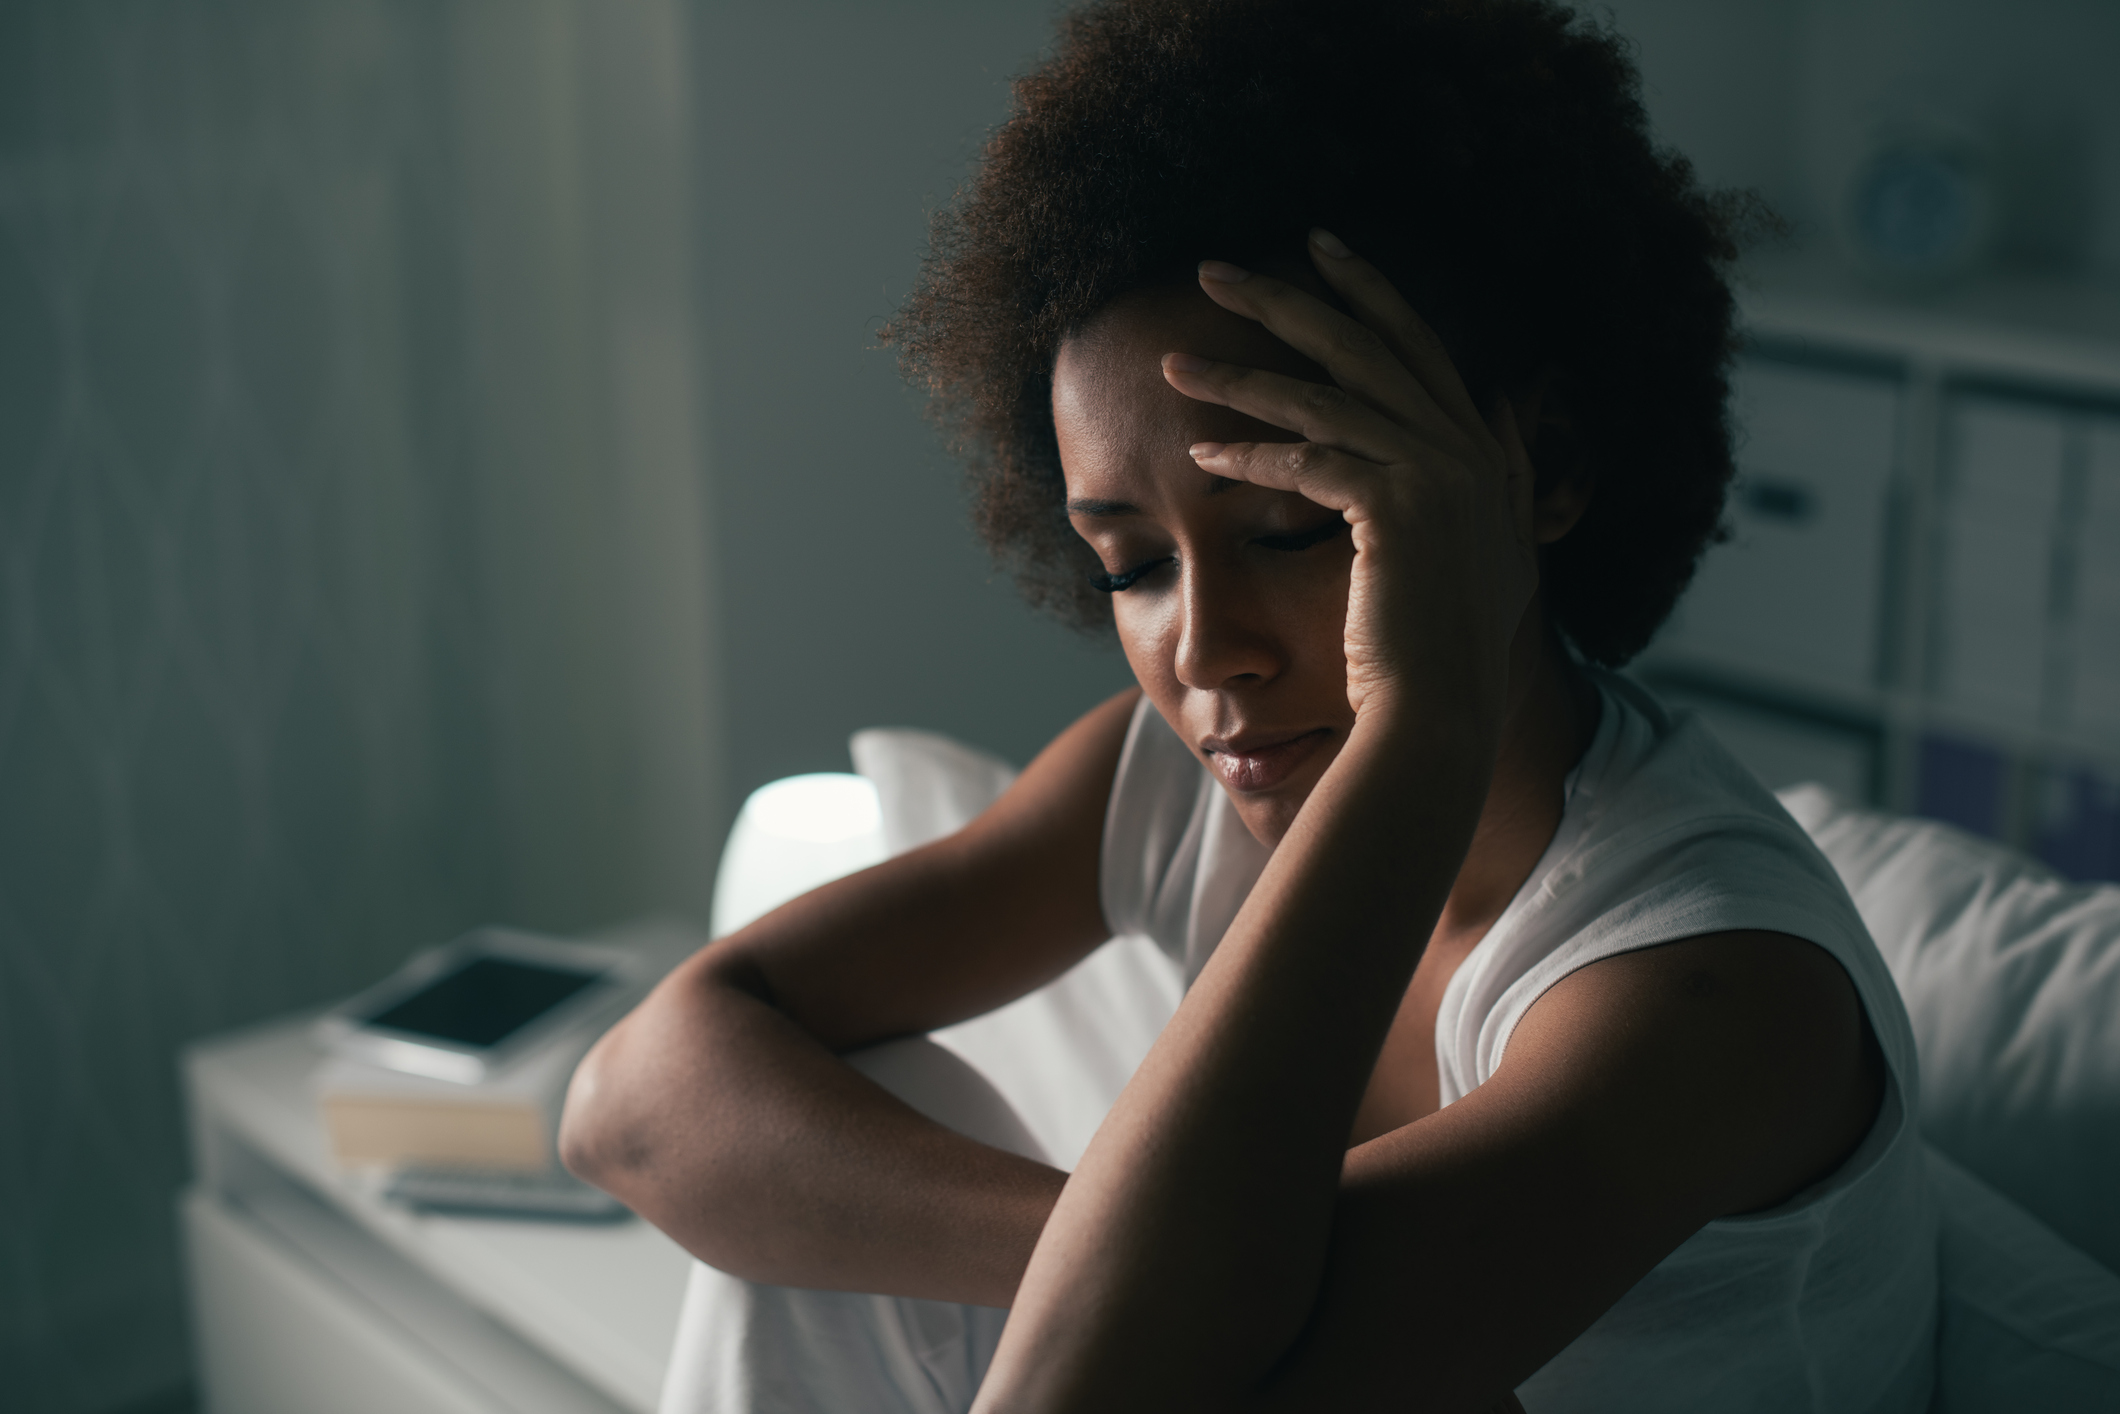 Ever felt irritable or depressed after not getting enough sleep? Here's why